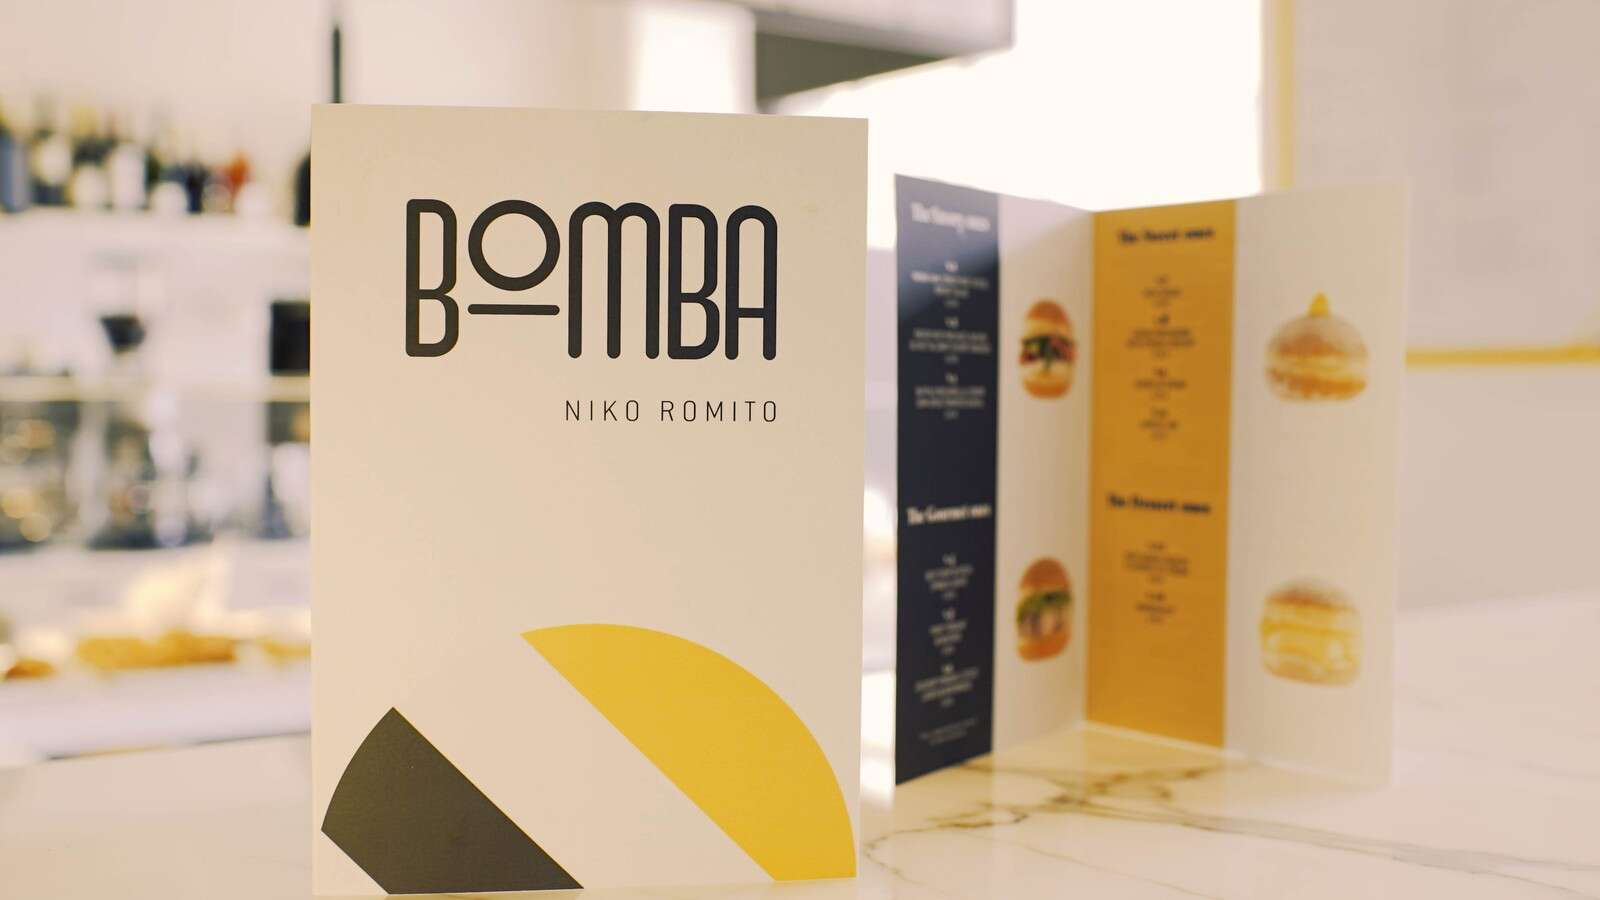 Bomba The Group S New Concept Opens In Milan Autogrill